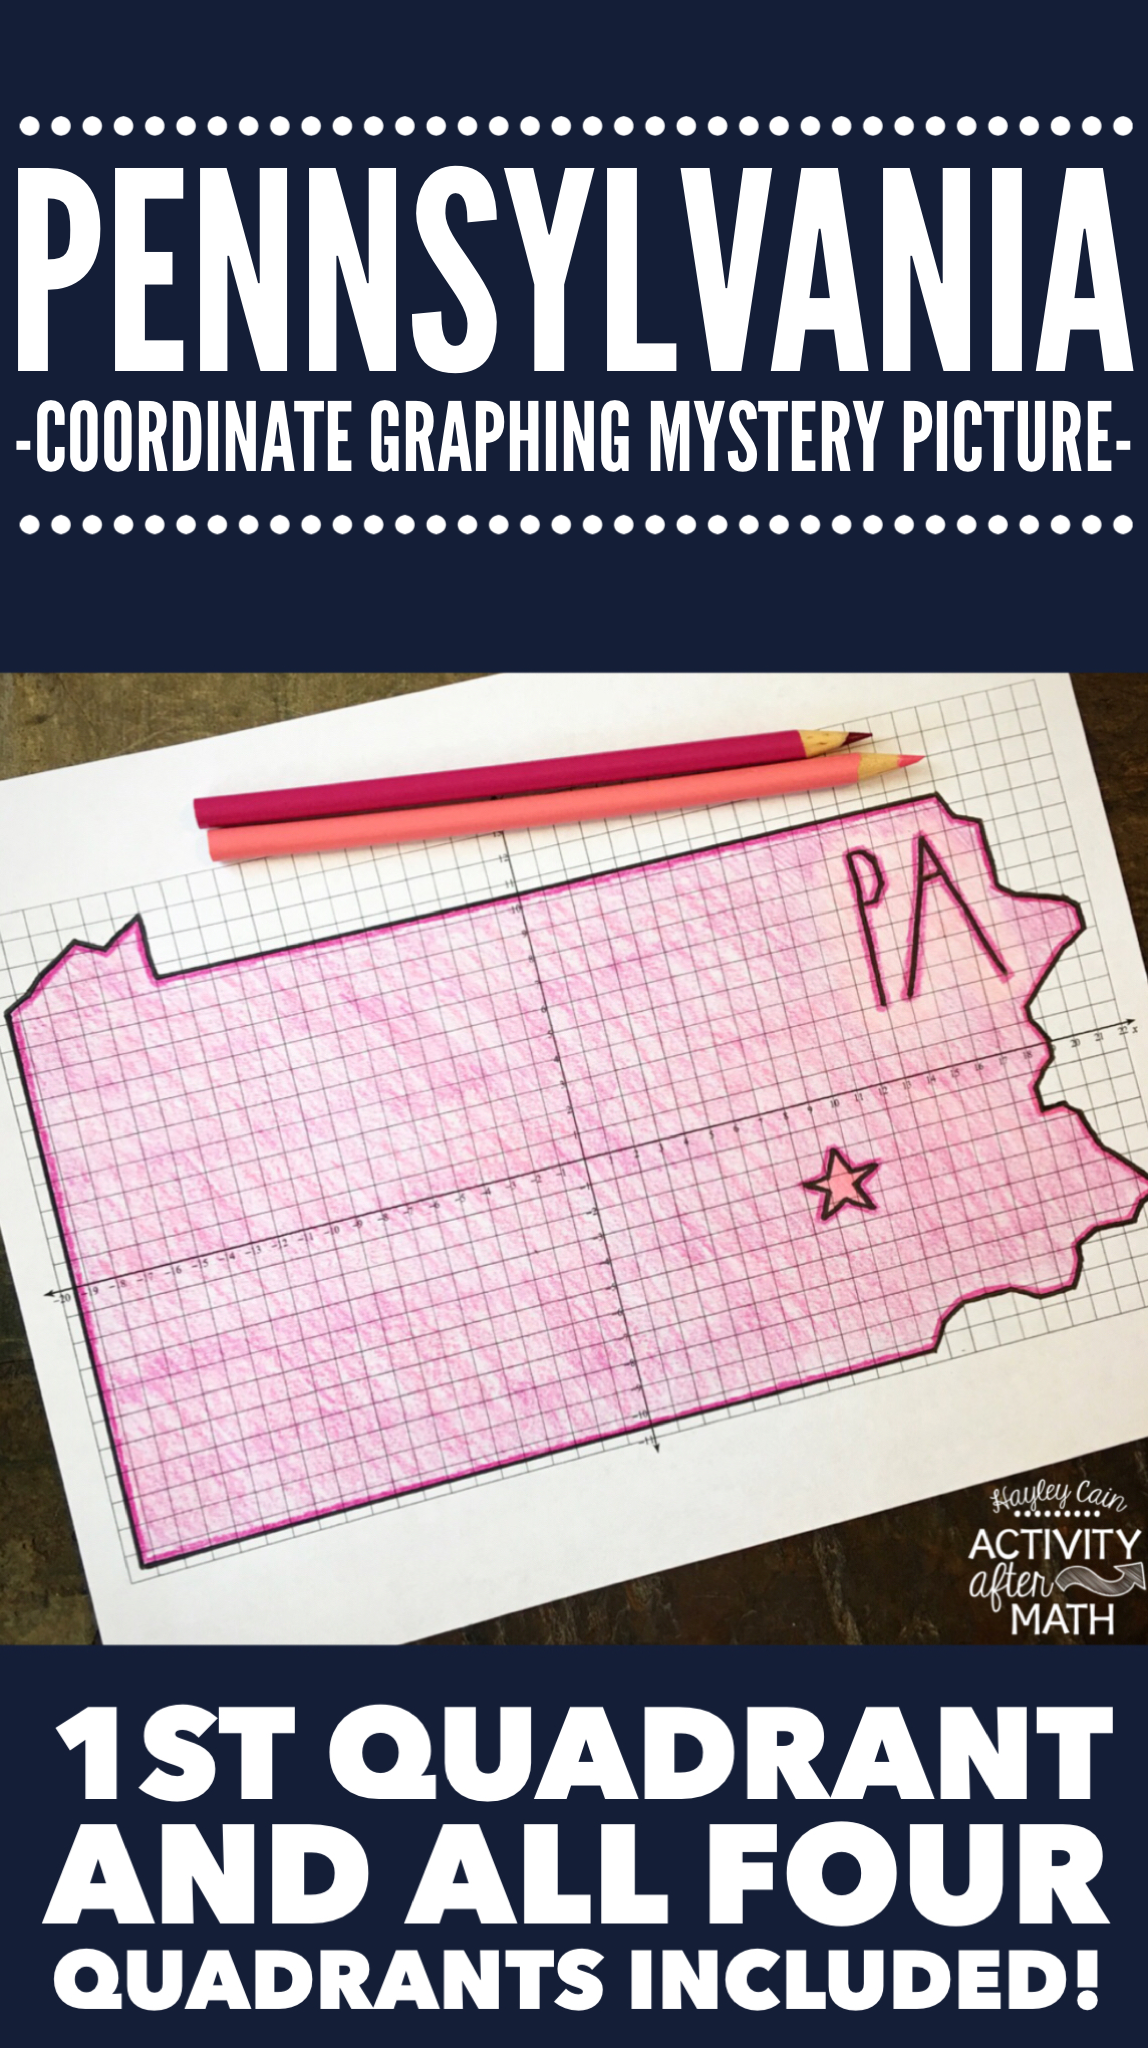 Pennsylvania Coordinate Graphing Picture 1st Quadrant